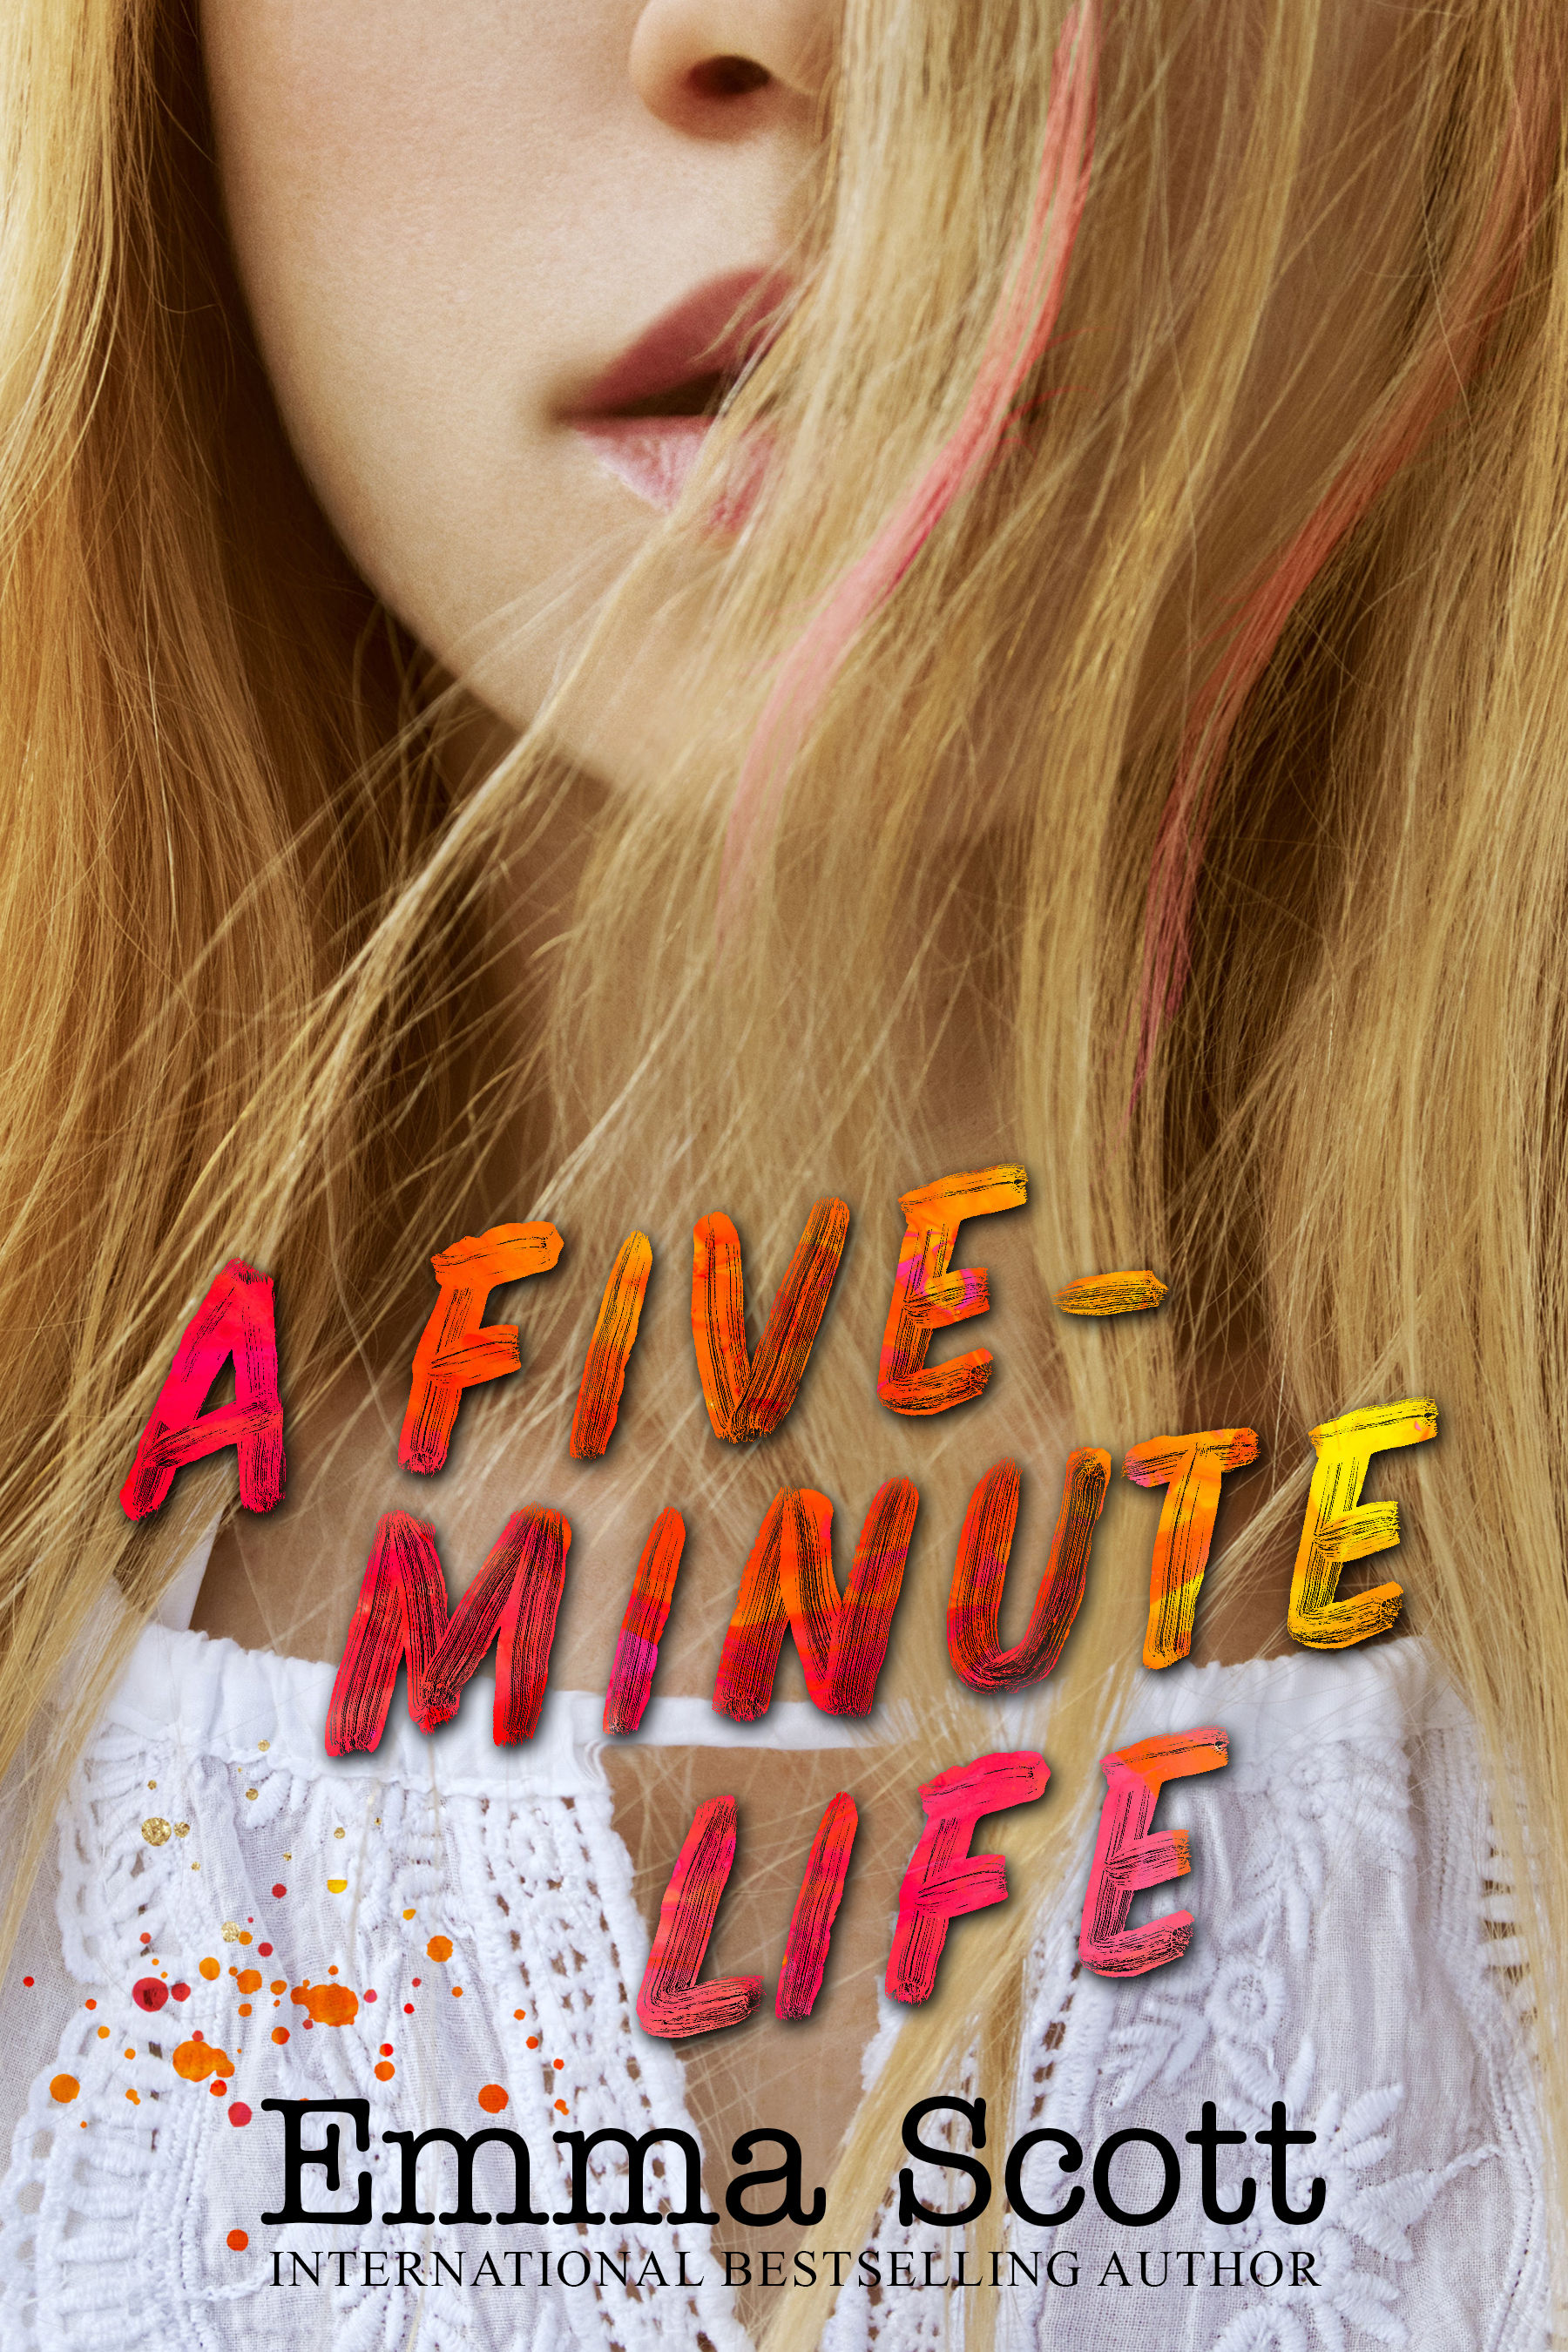 FIVE_MINUTE_LIFE